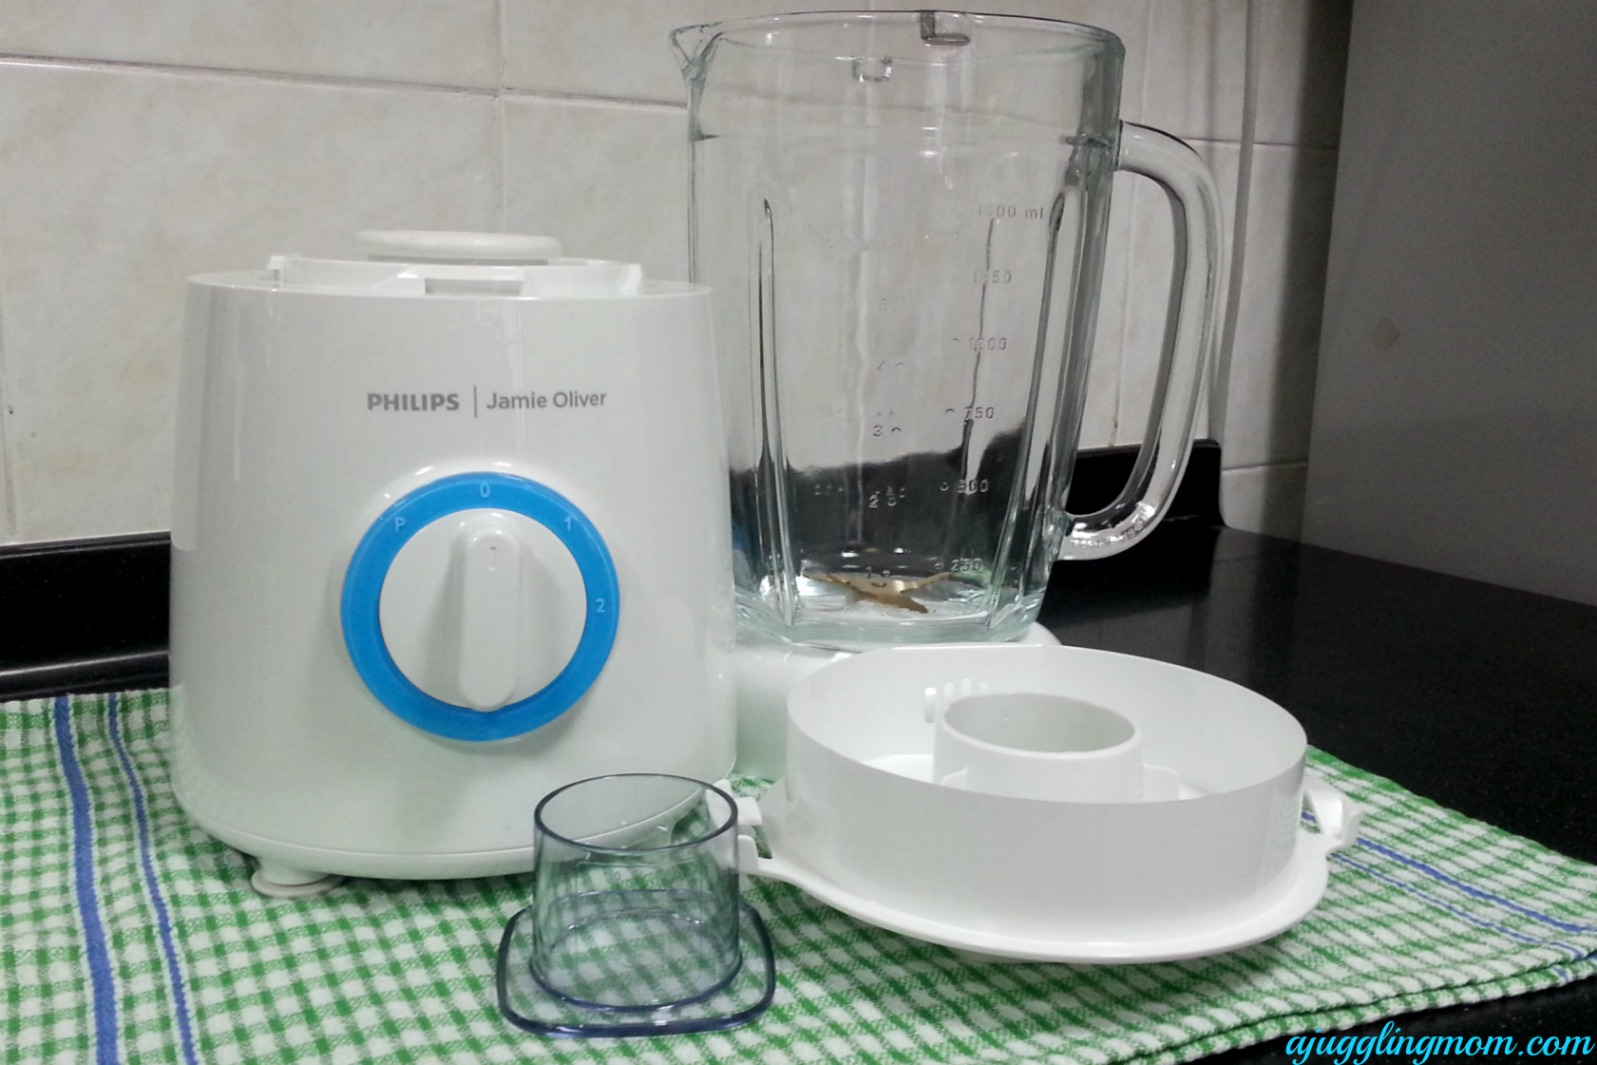 Uncategorized Jamie Oliver Kitchen Appliances starting the day with philips jamie oliver blender a juggling mom i like how simple it is just 2 speed options and pulse setting unlike other blenders jar for this m